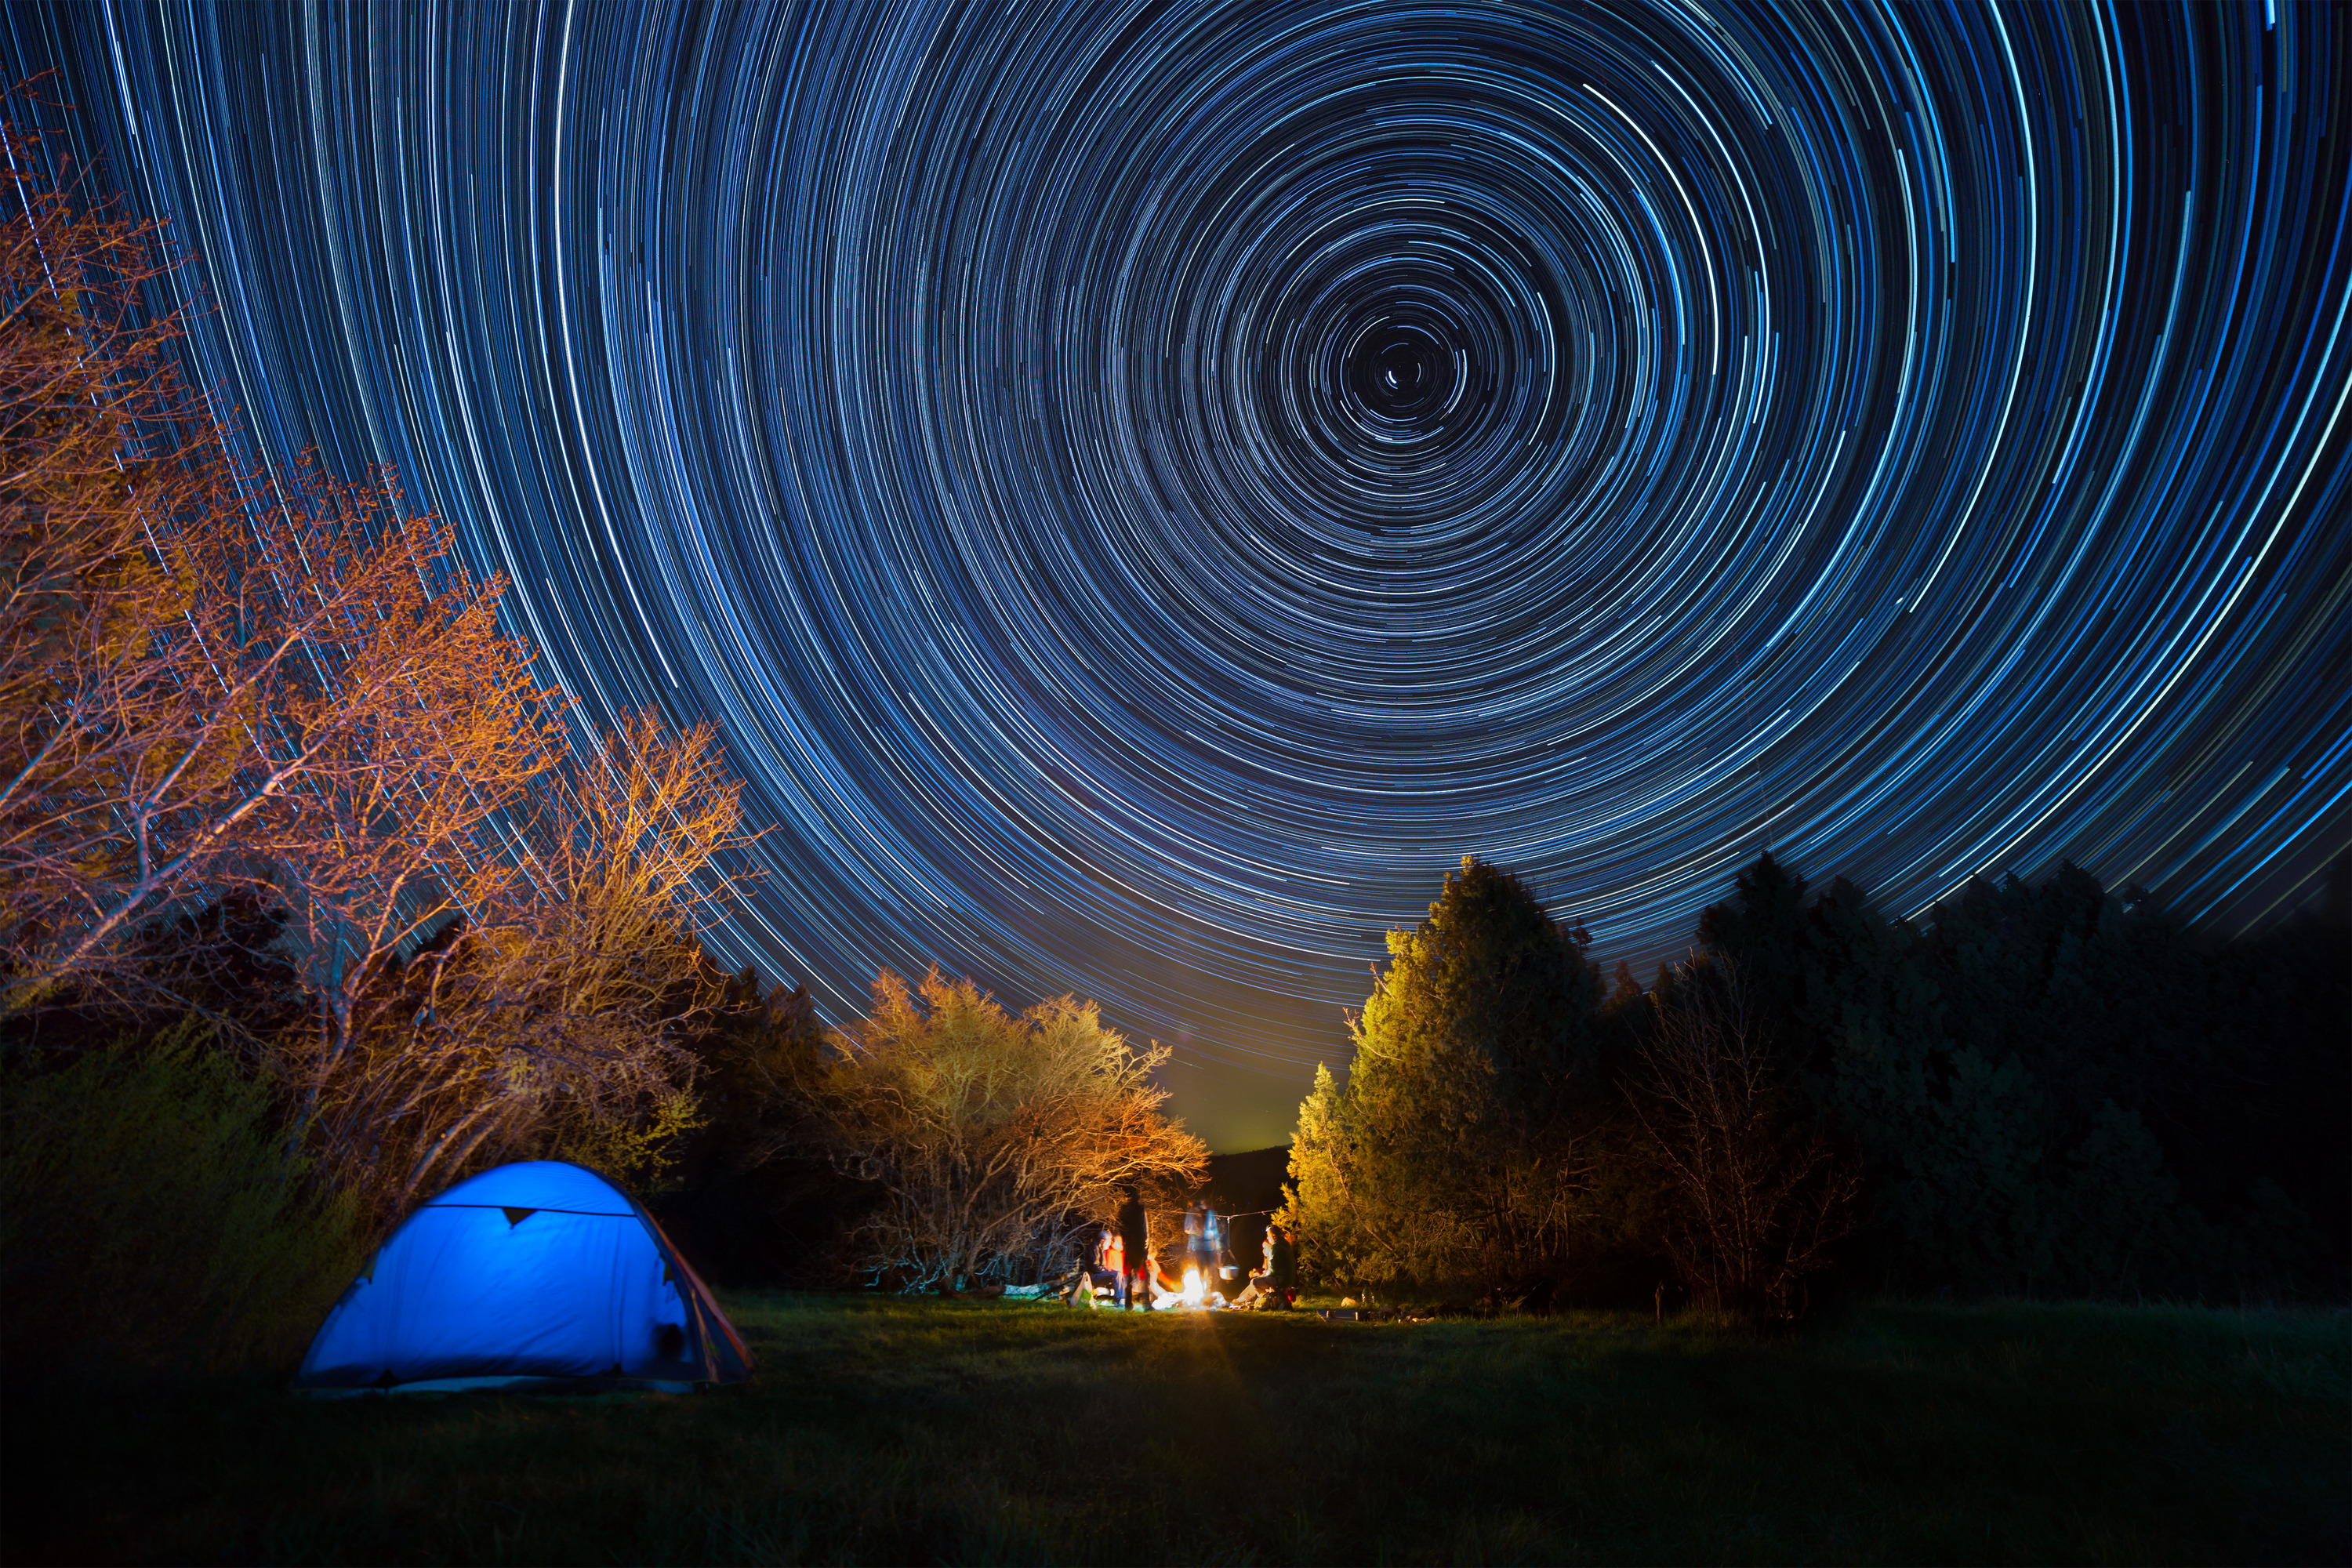 tent-against-the-night-sky-with-tracks-from-stars-l